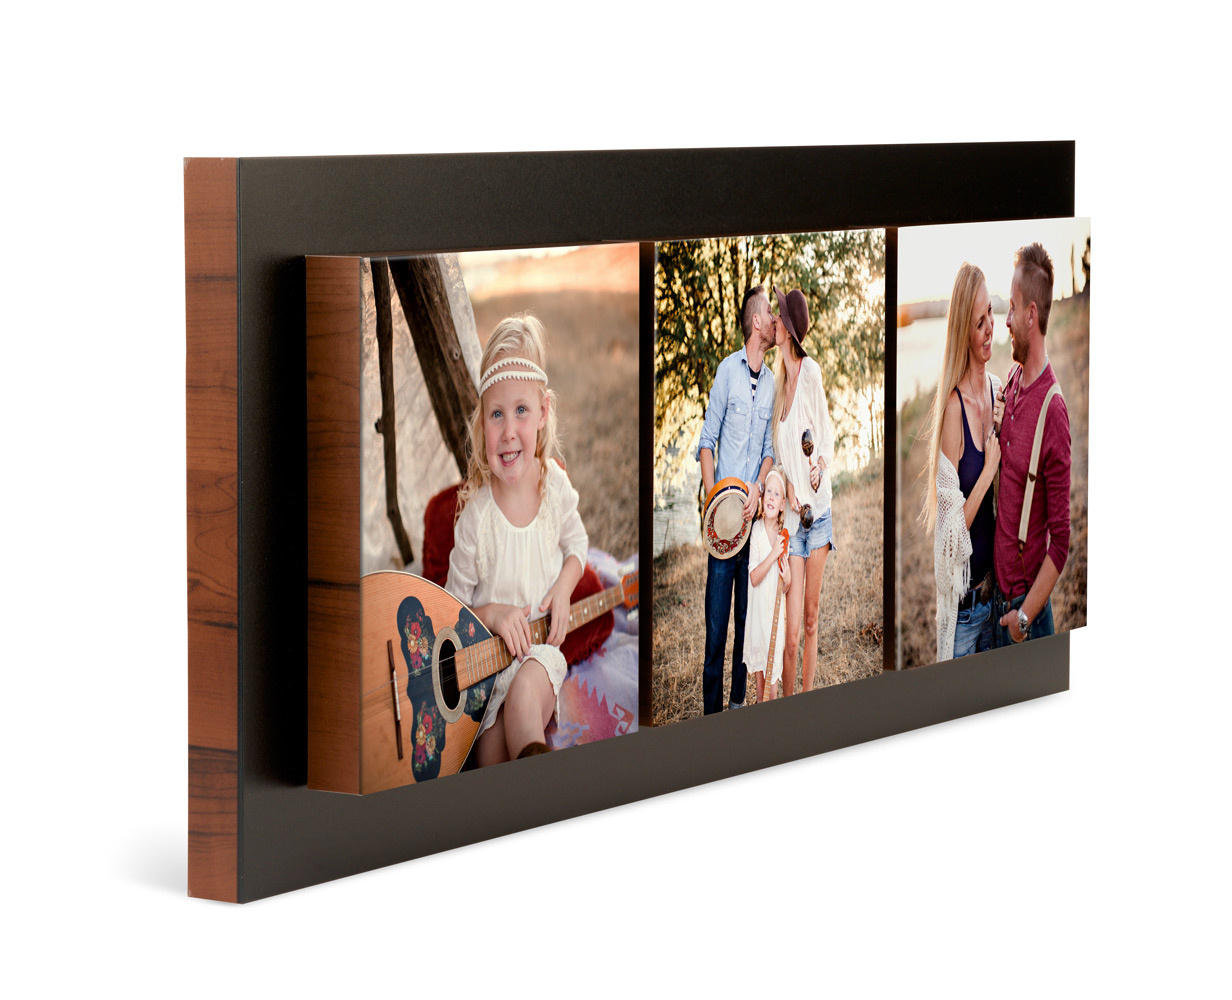 Image Block - The Image Block has a similar look to a Gallery Wrap in that the image or design is wrapped around a 1